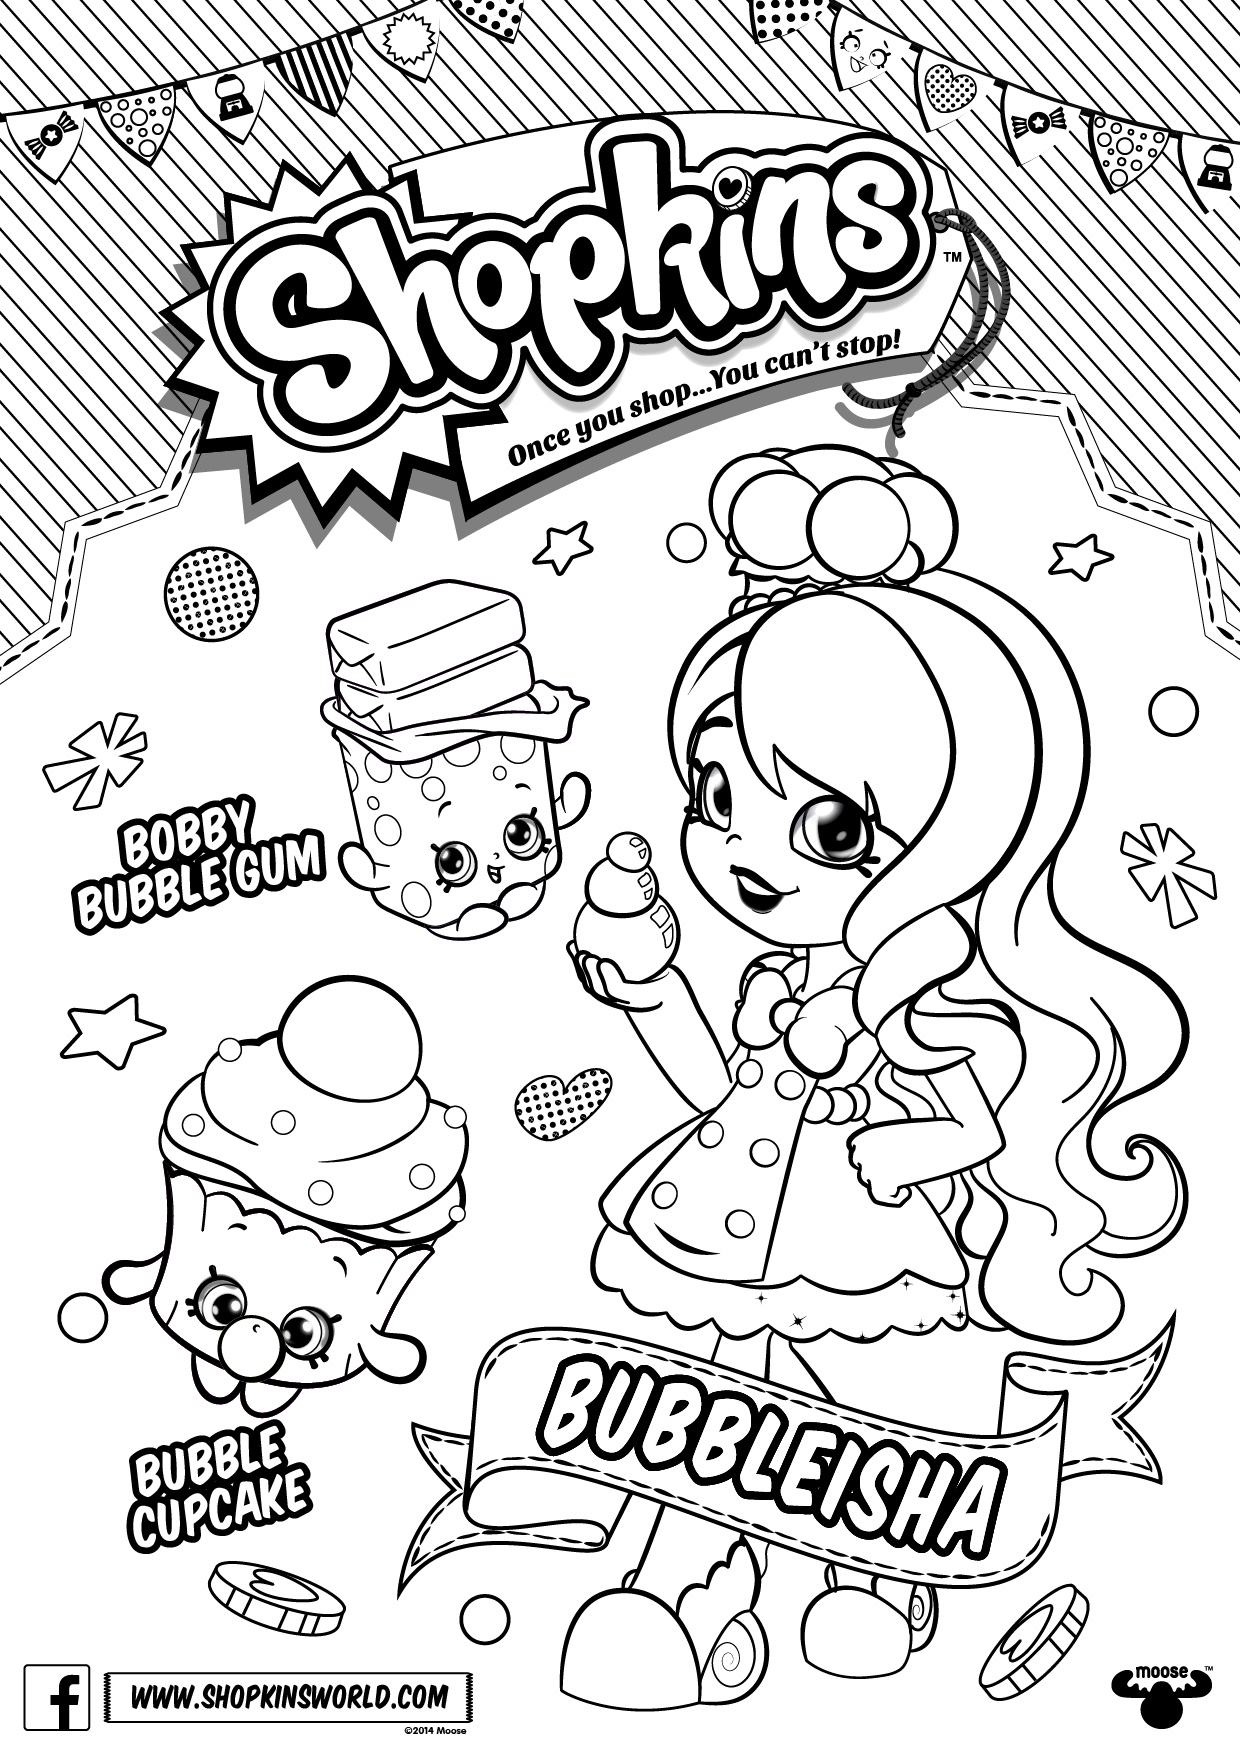 Free Shoppies Coloring Pages Shopkins Lineart printable